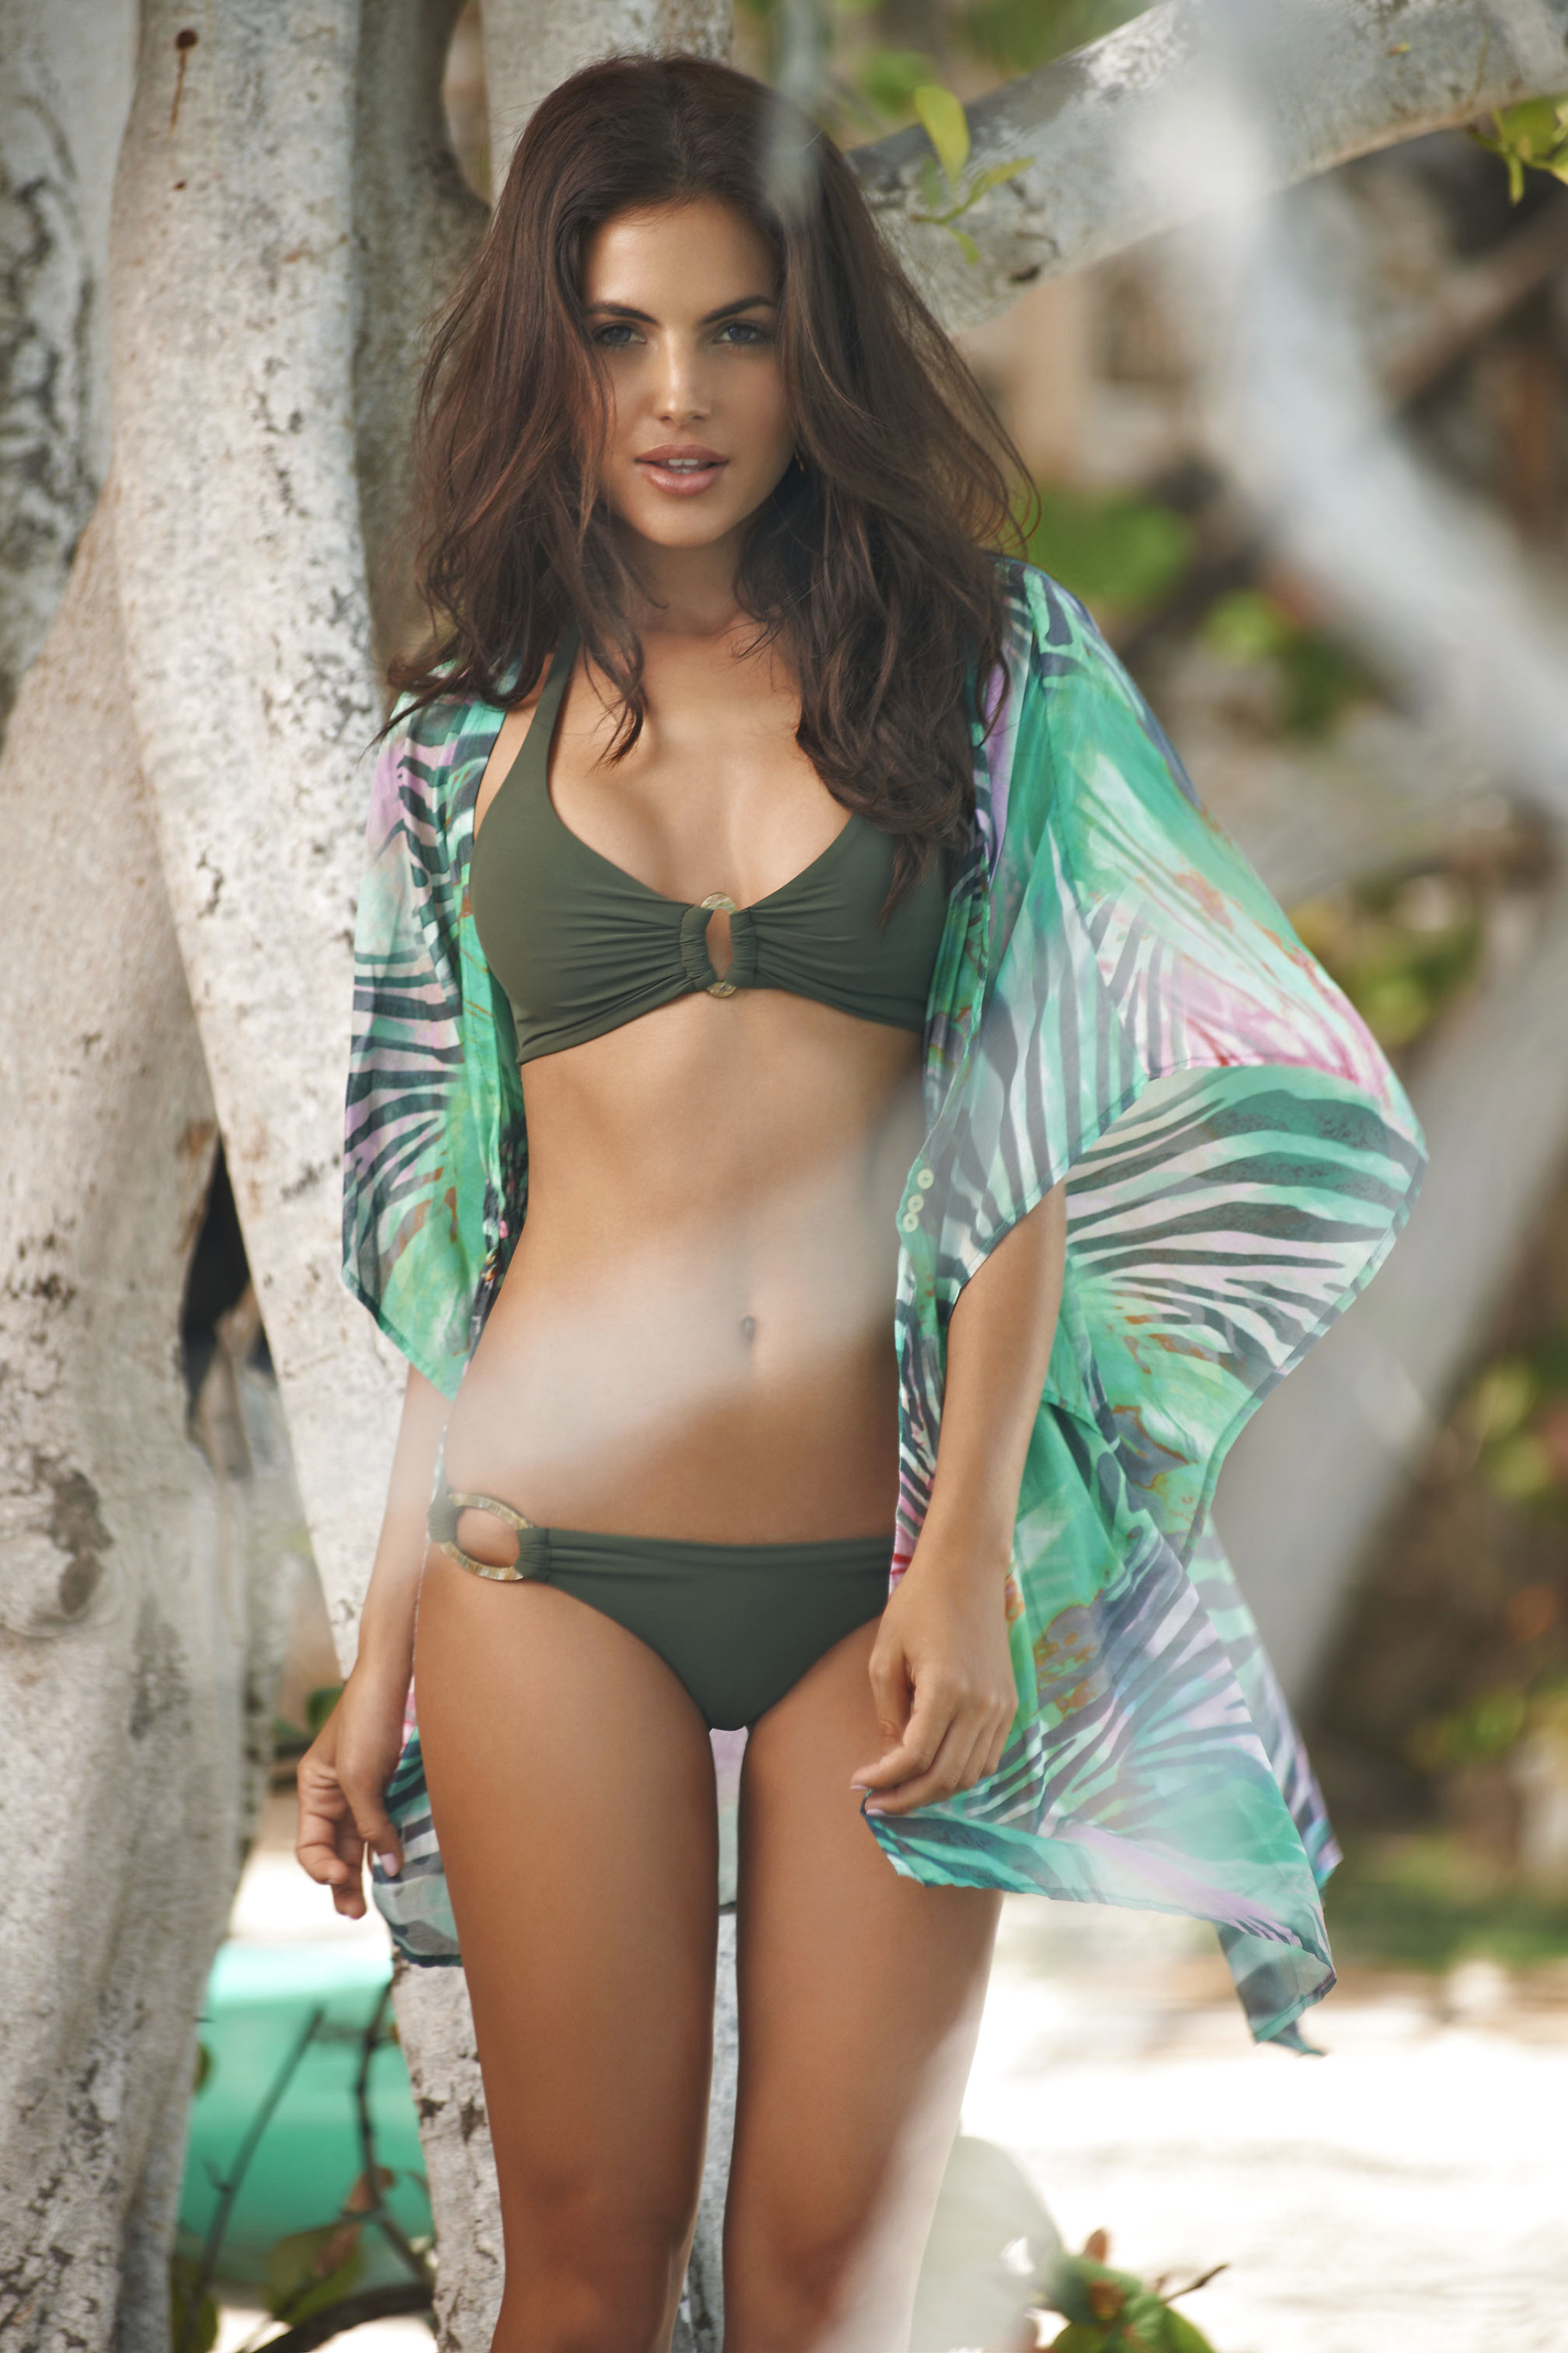 diana morales green bikini swimsuit sexy lingerie body beach